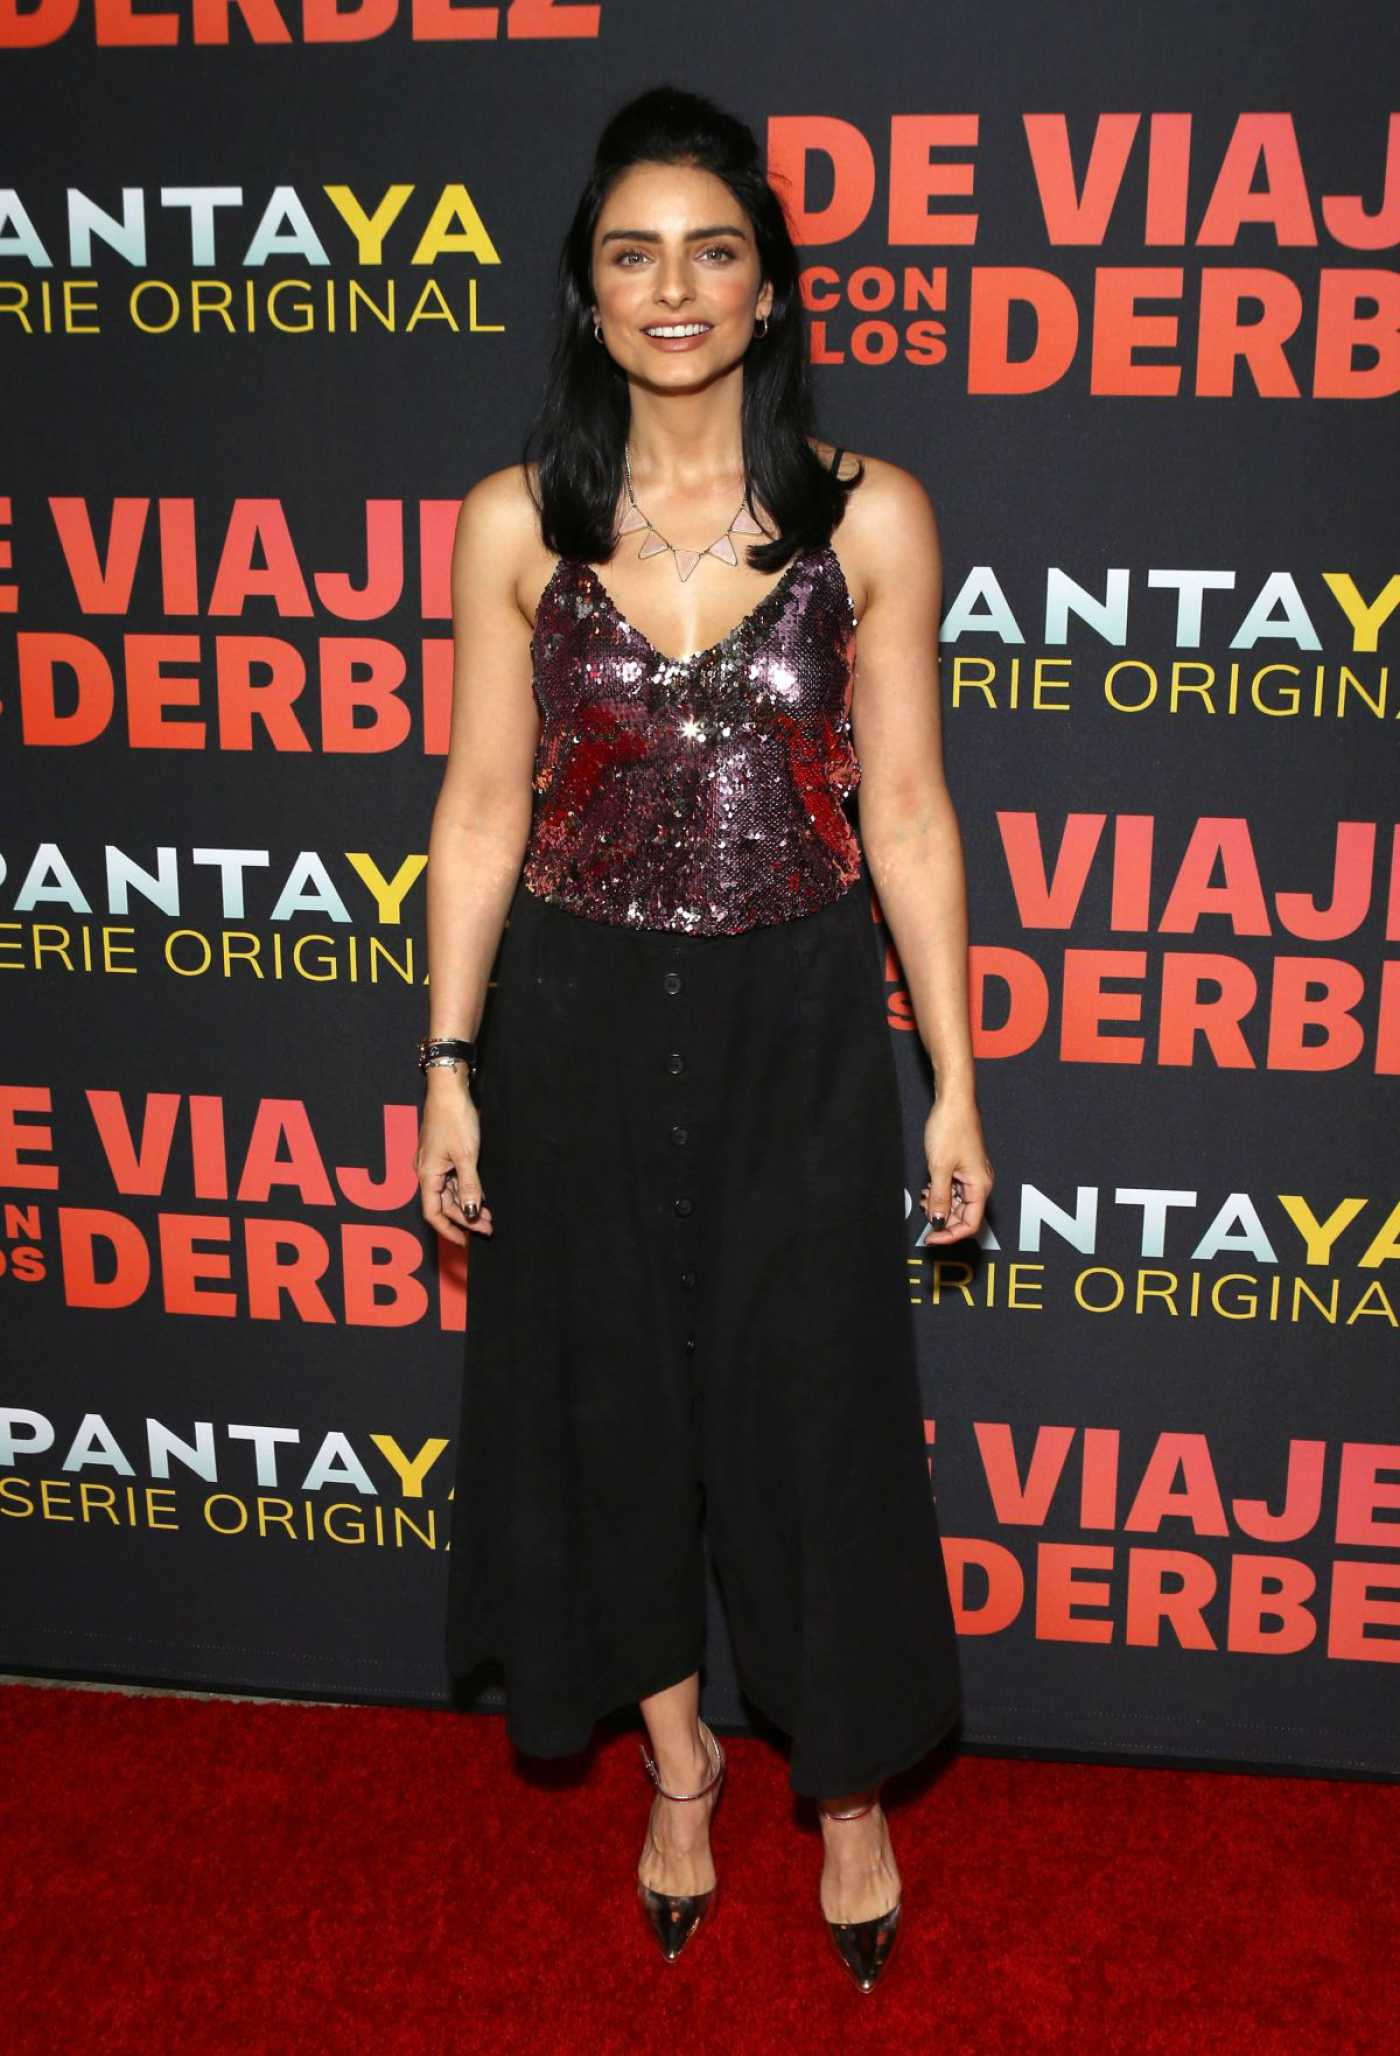 Aislinn Derbez Attends the De Viaje Con Los Derbez TV Show Premiere in LA 10/15/2019